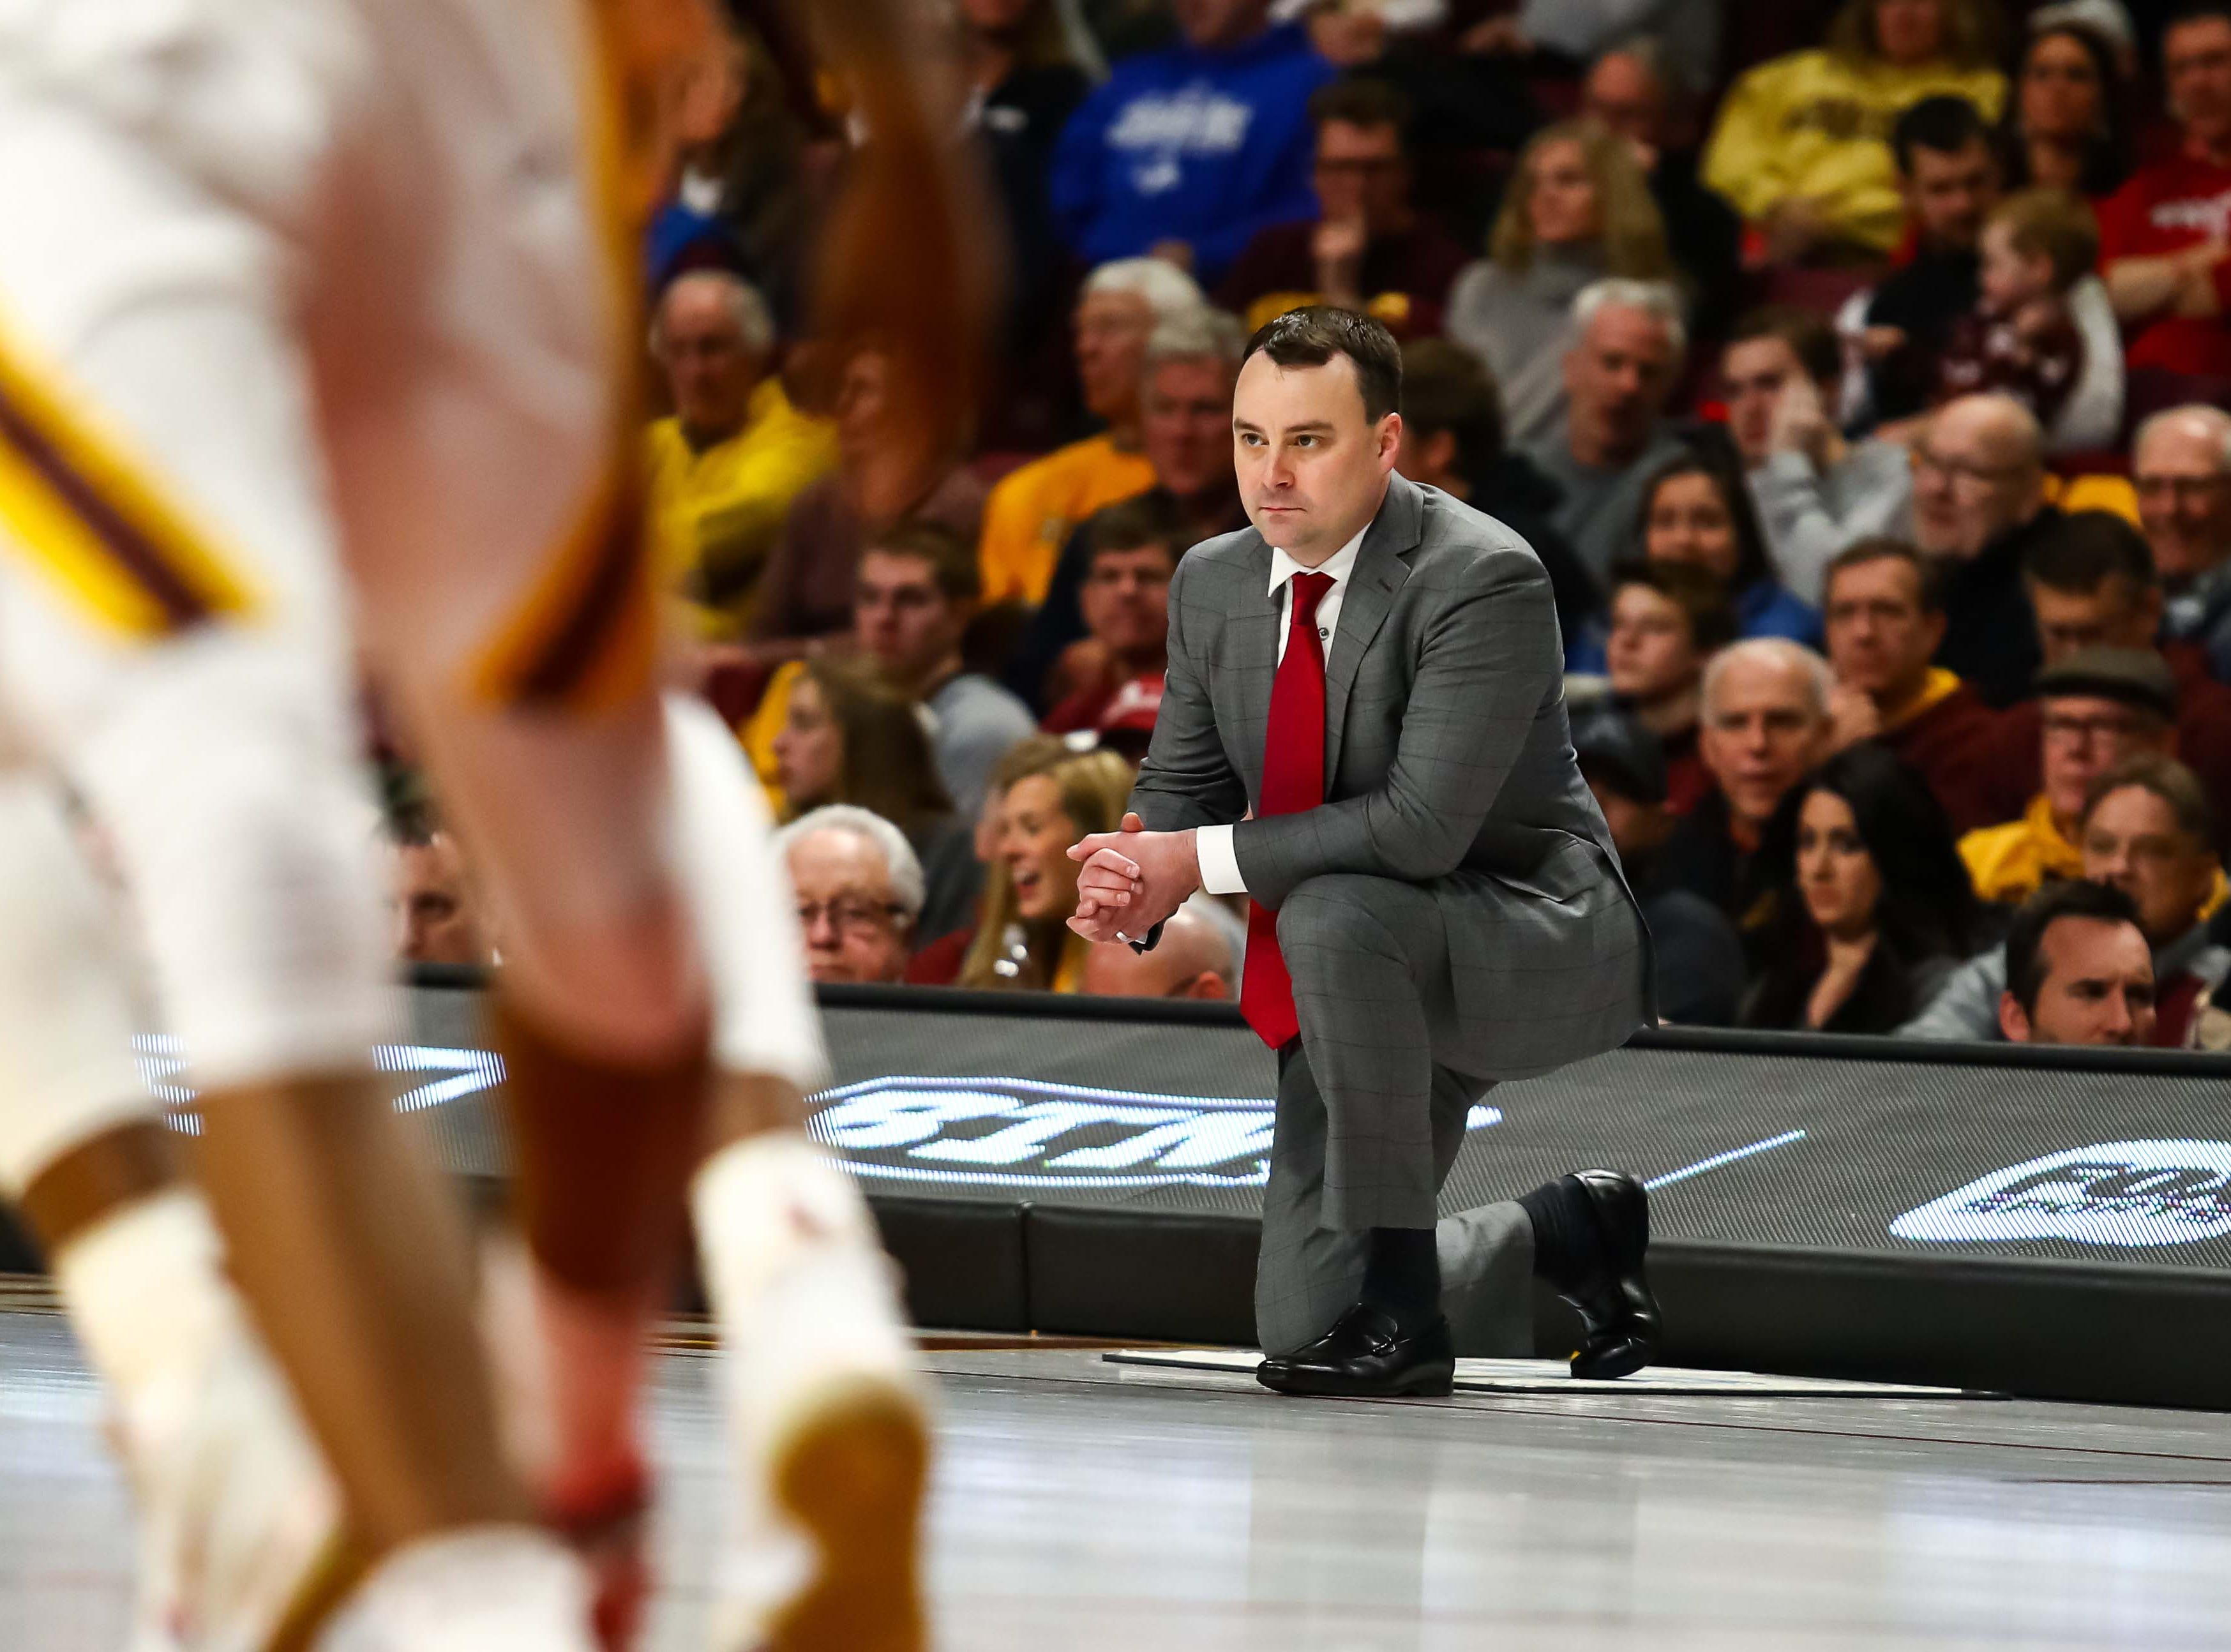 Feb 16, 2019; Minneapolis, MN, USA; Indiana Hoosiers head coach Archie Miller looks on in the second half against the Minnesota Golden Gophers at Williams Arena. The Minnesota Golden Gophers defeatd the Indiana Hoosiers 84-63. Mandatory Credit: David Berding-USA TODAY Sports